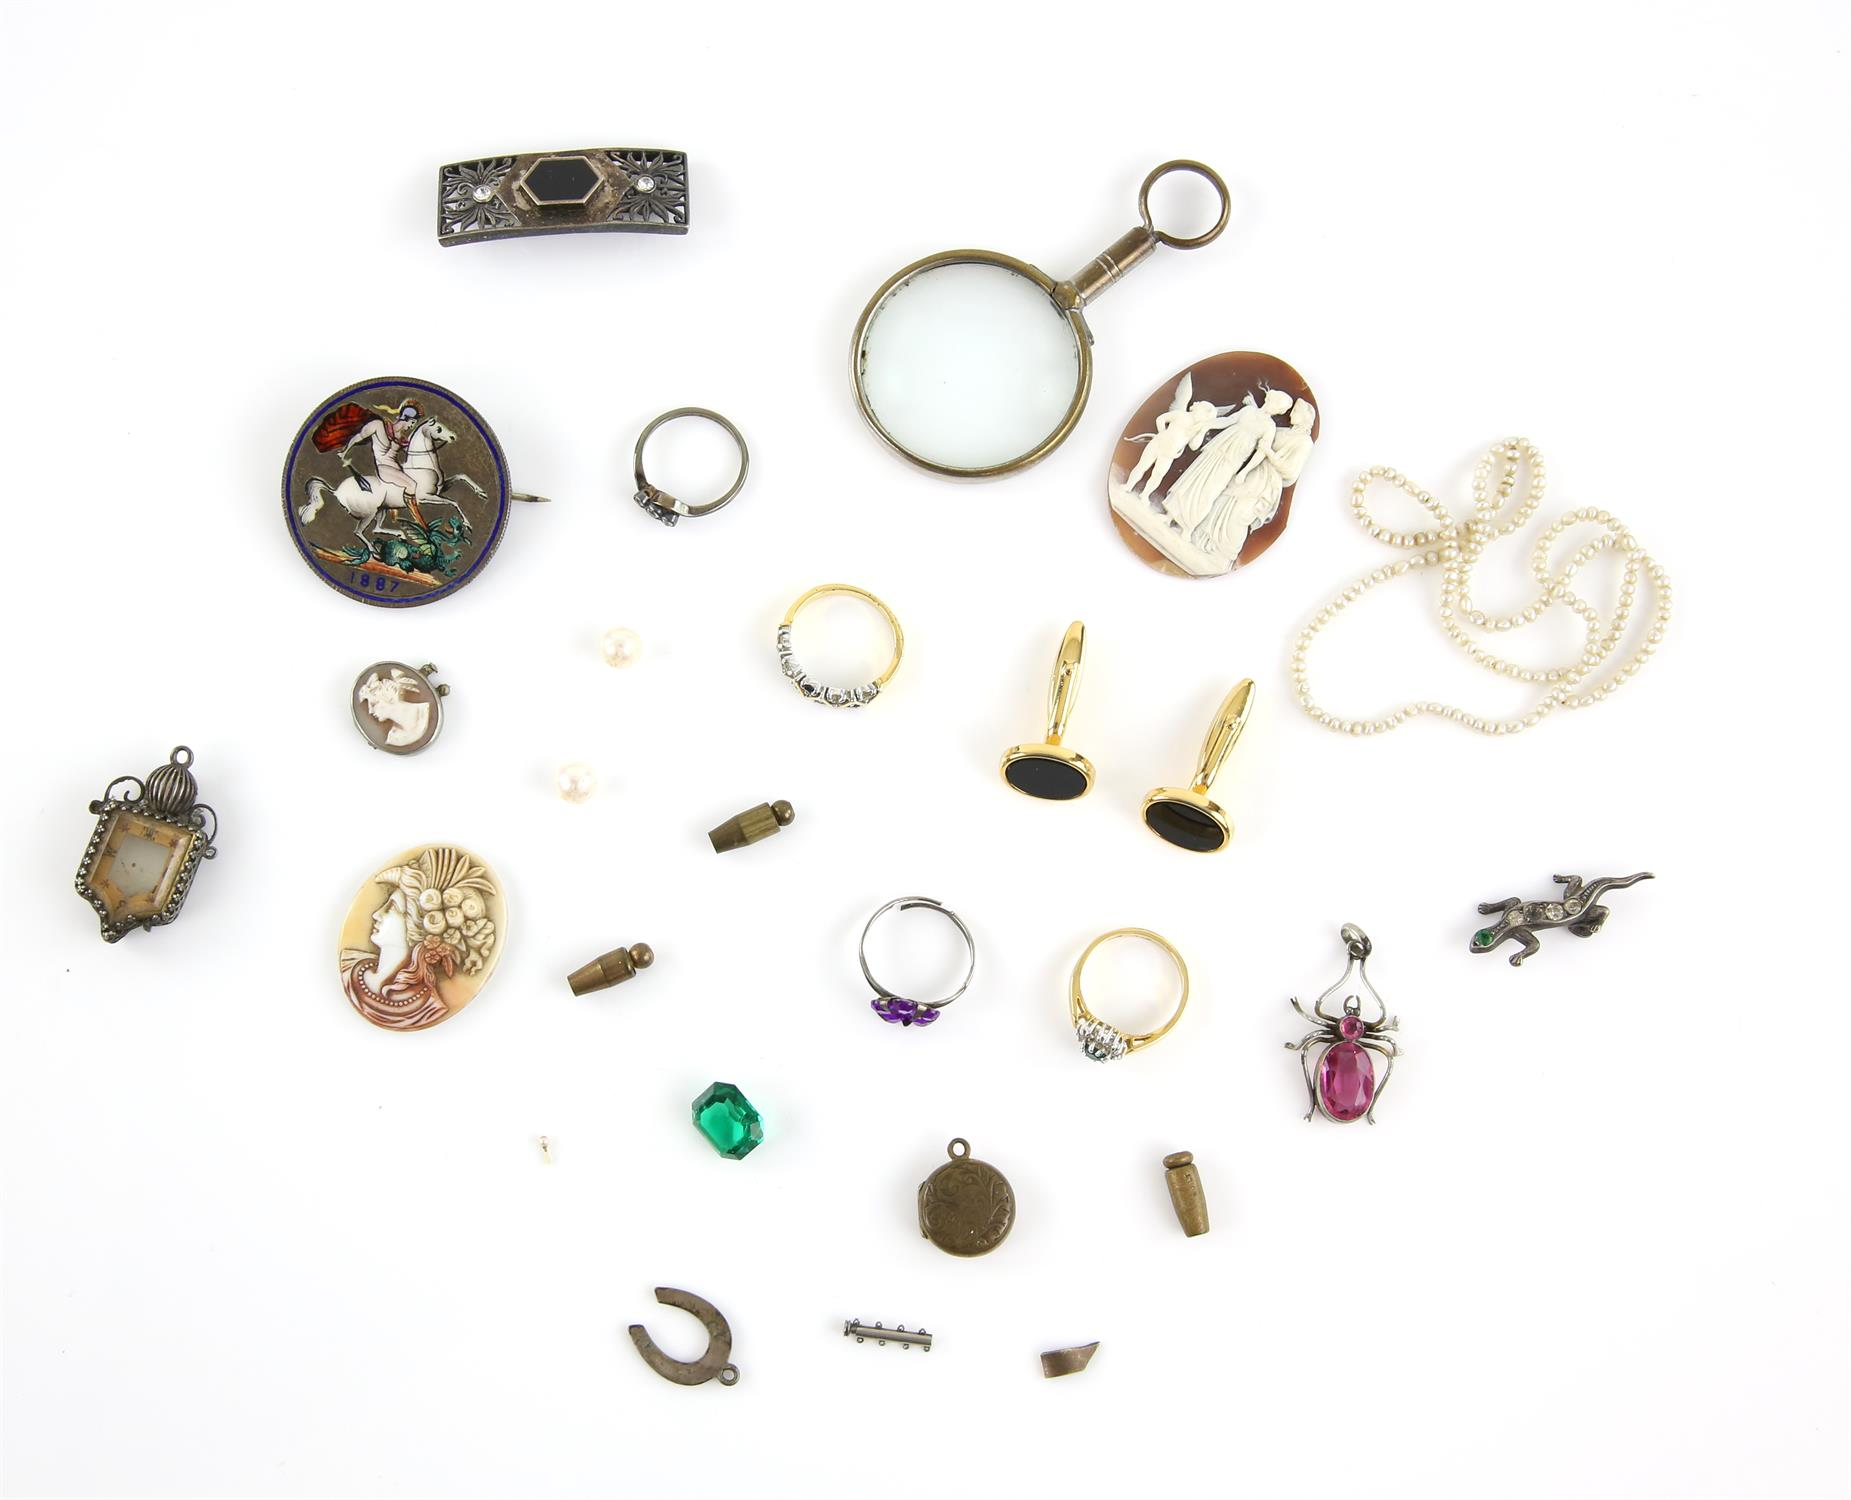 A mixed group of items, including a pearl and box chain link necklace, 38cm in length, - Image 2 of 2